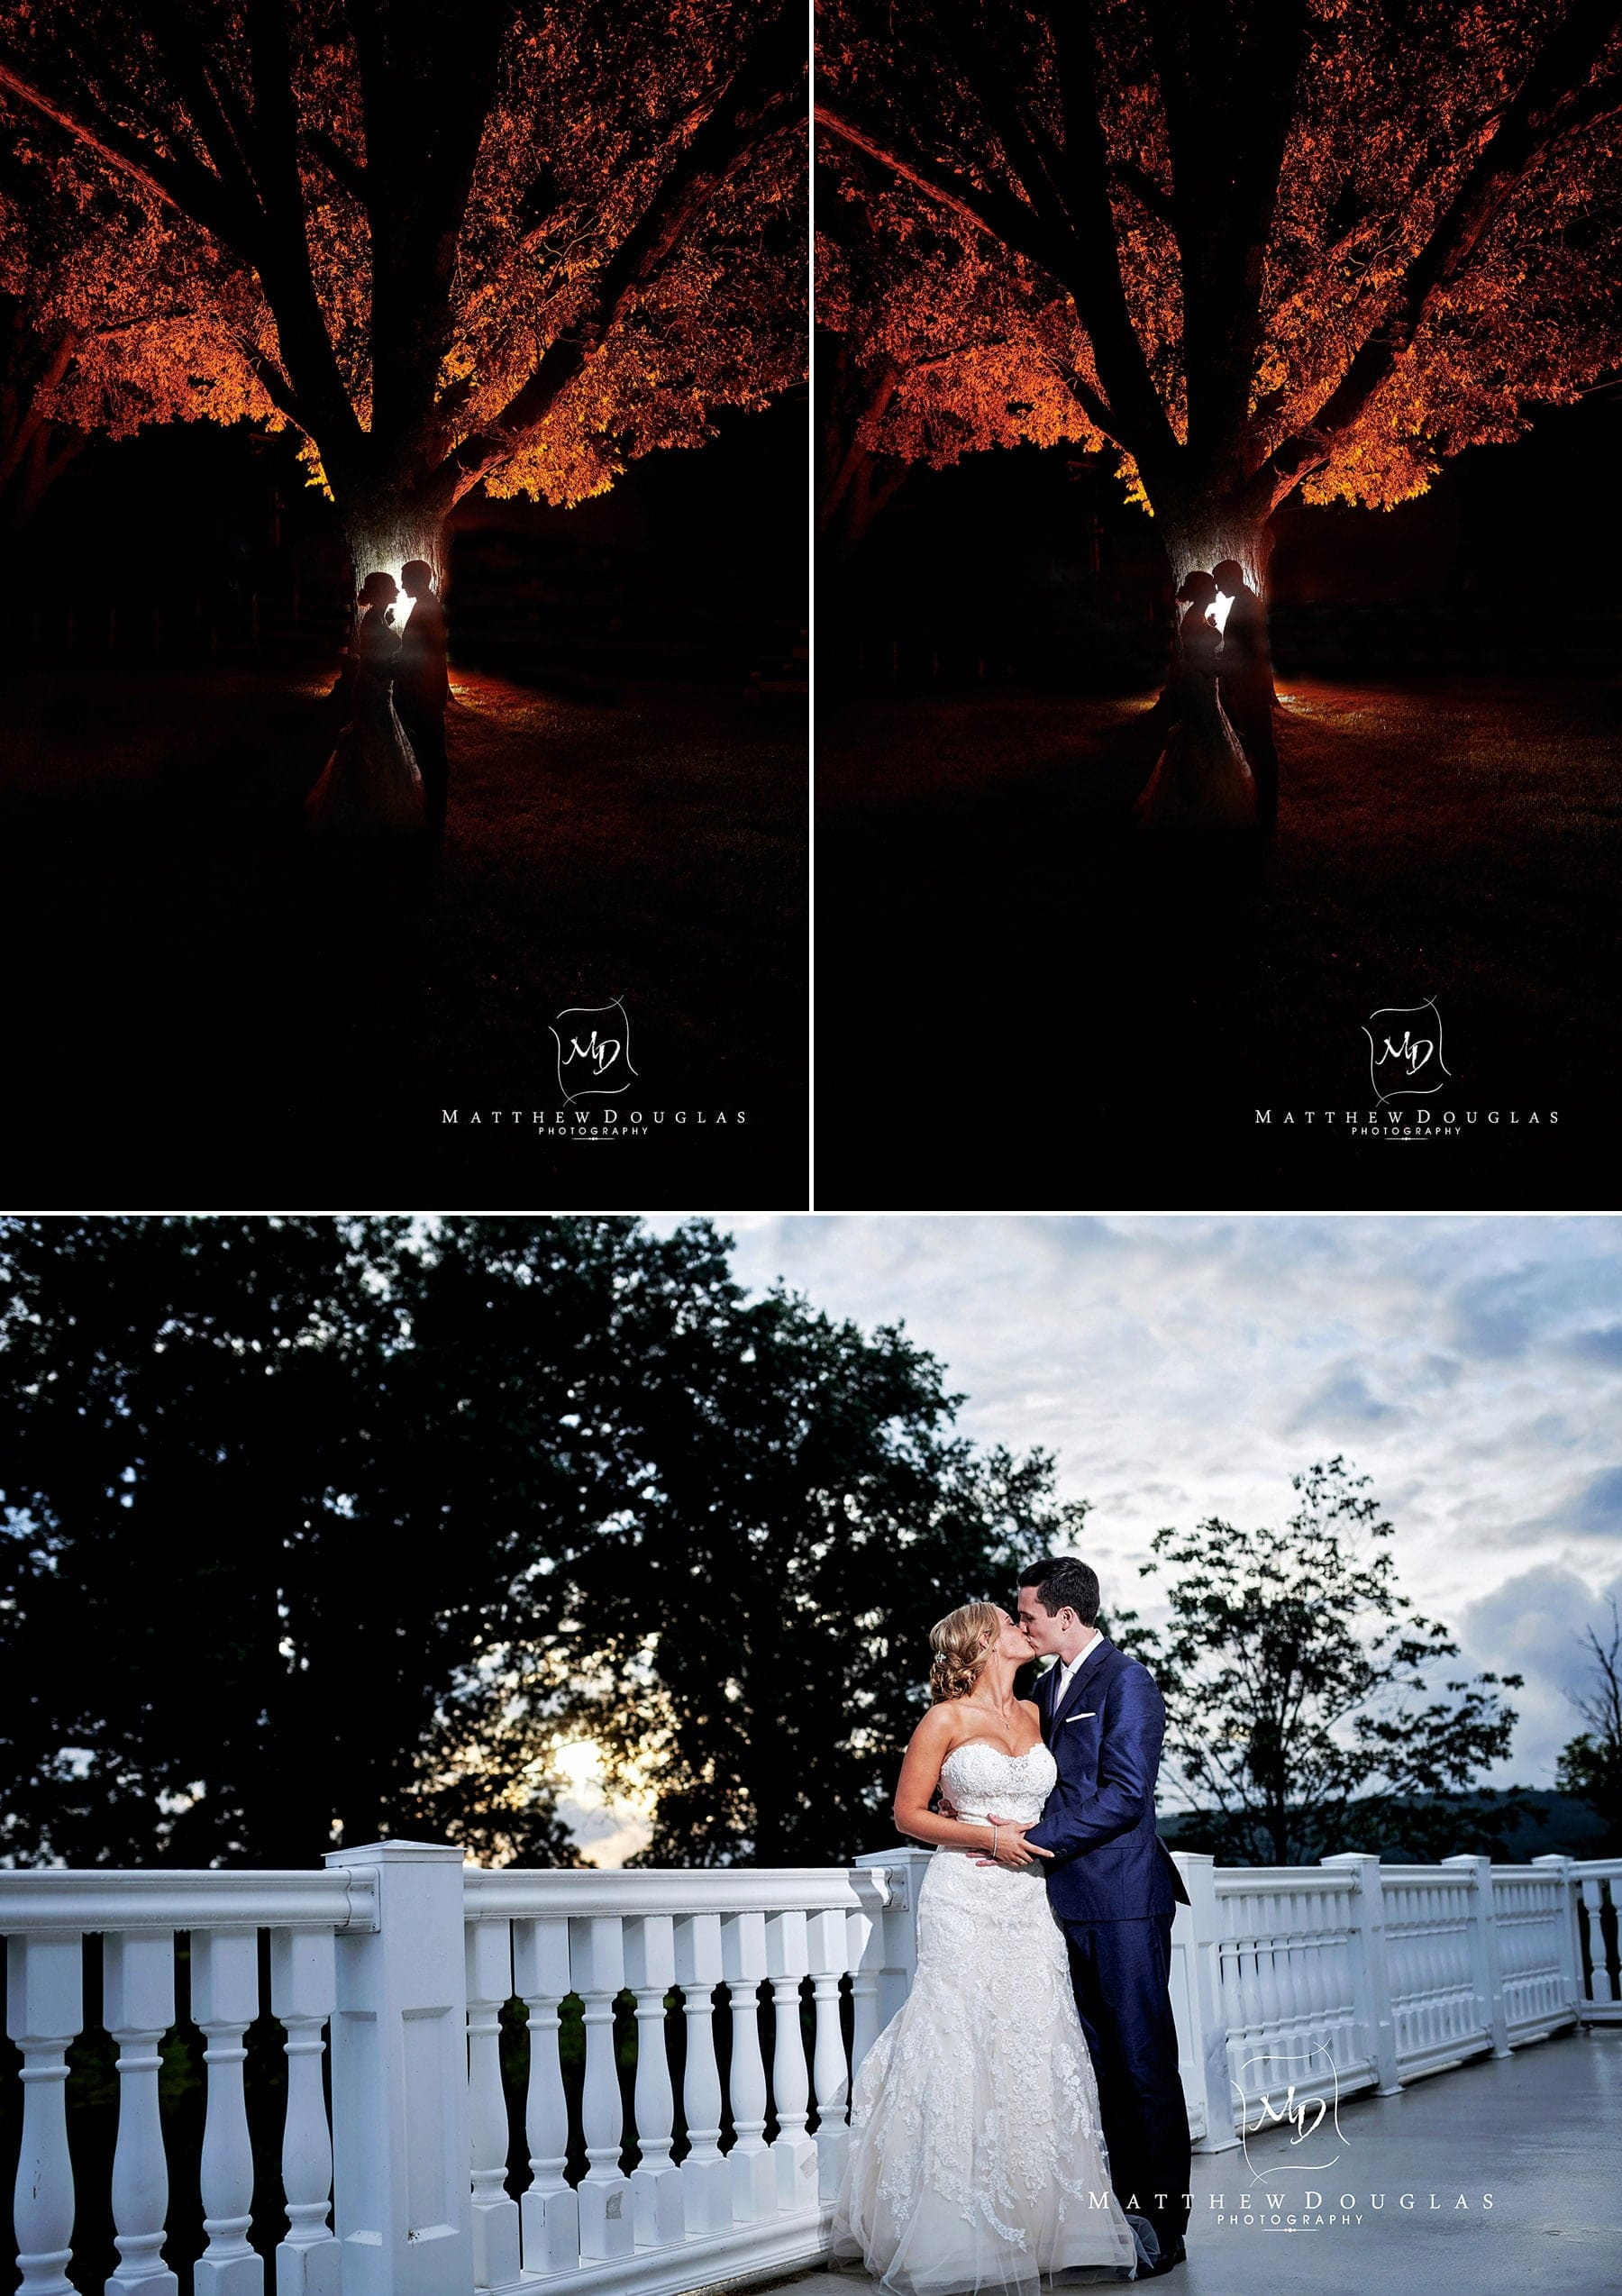 Chandelier Flanders Valley Wedding night portrait photos